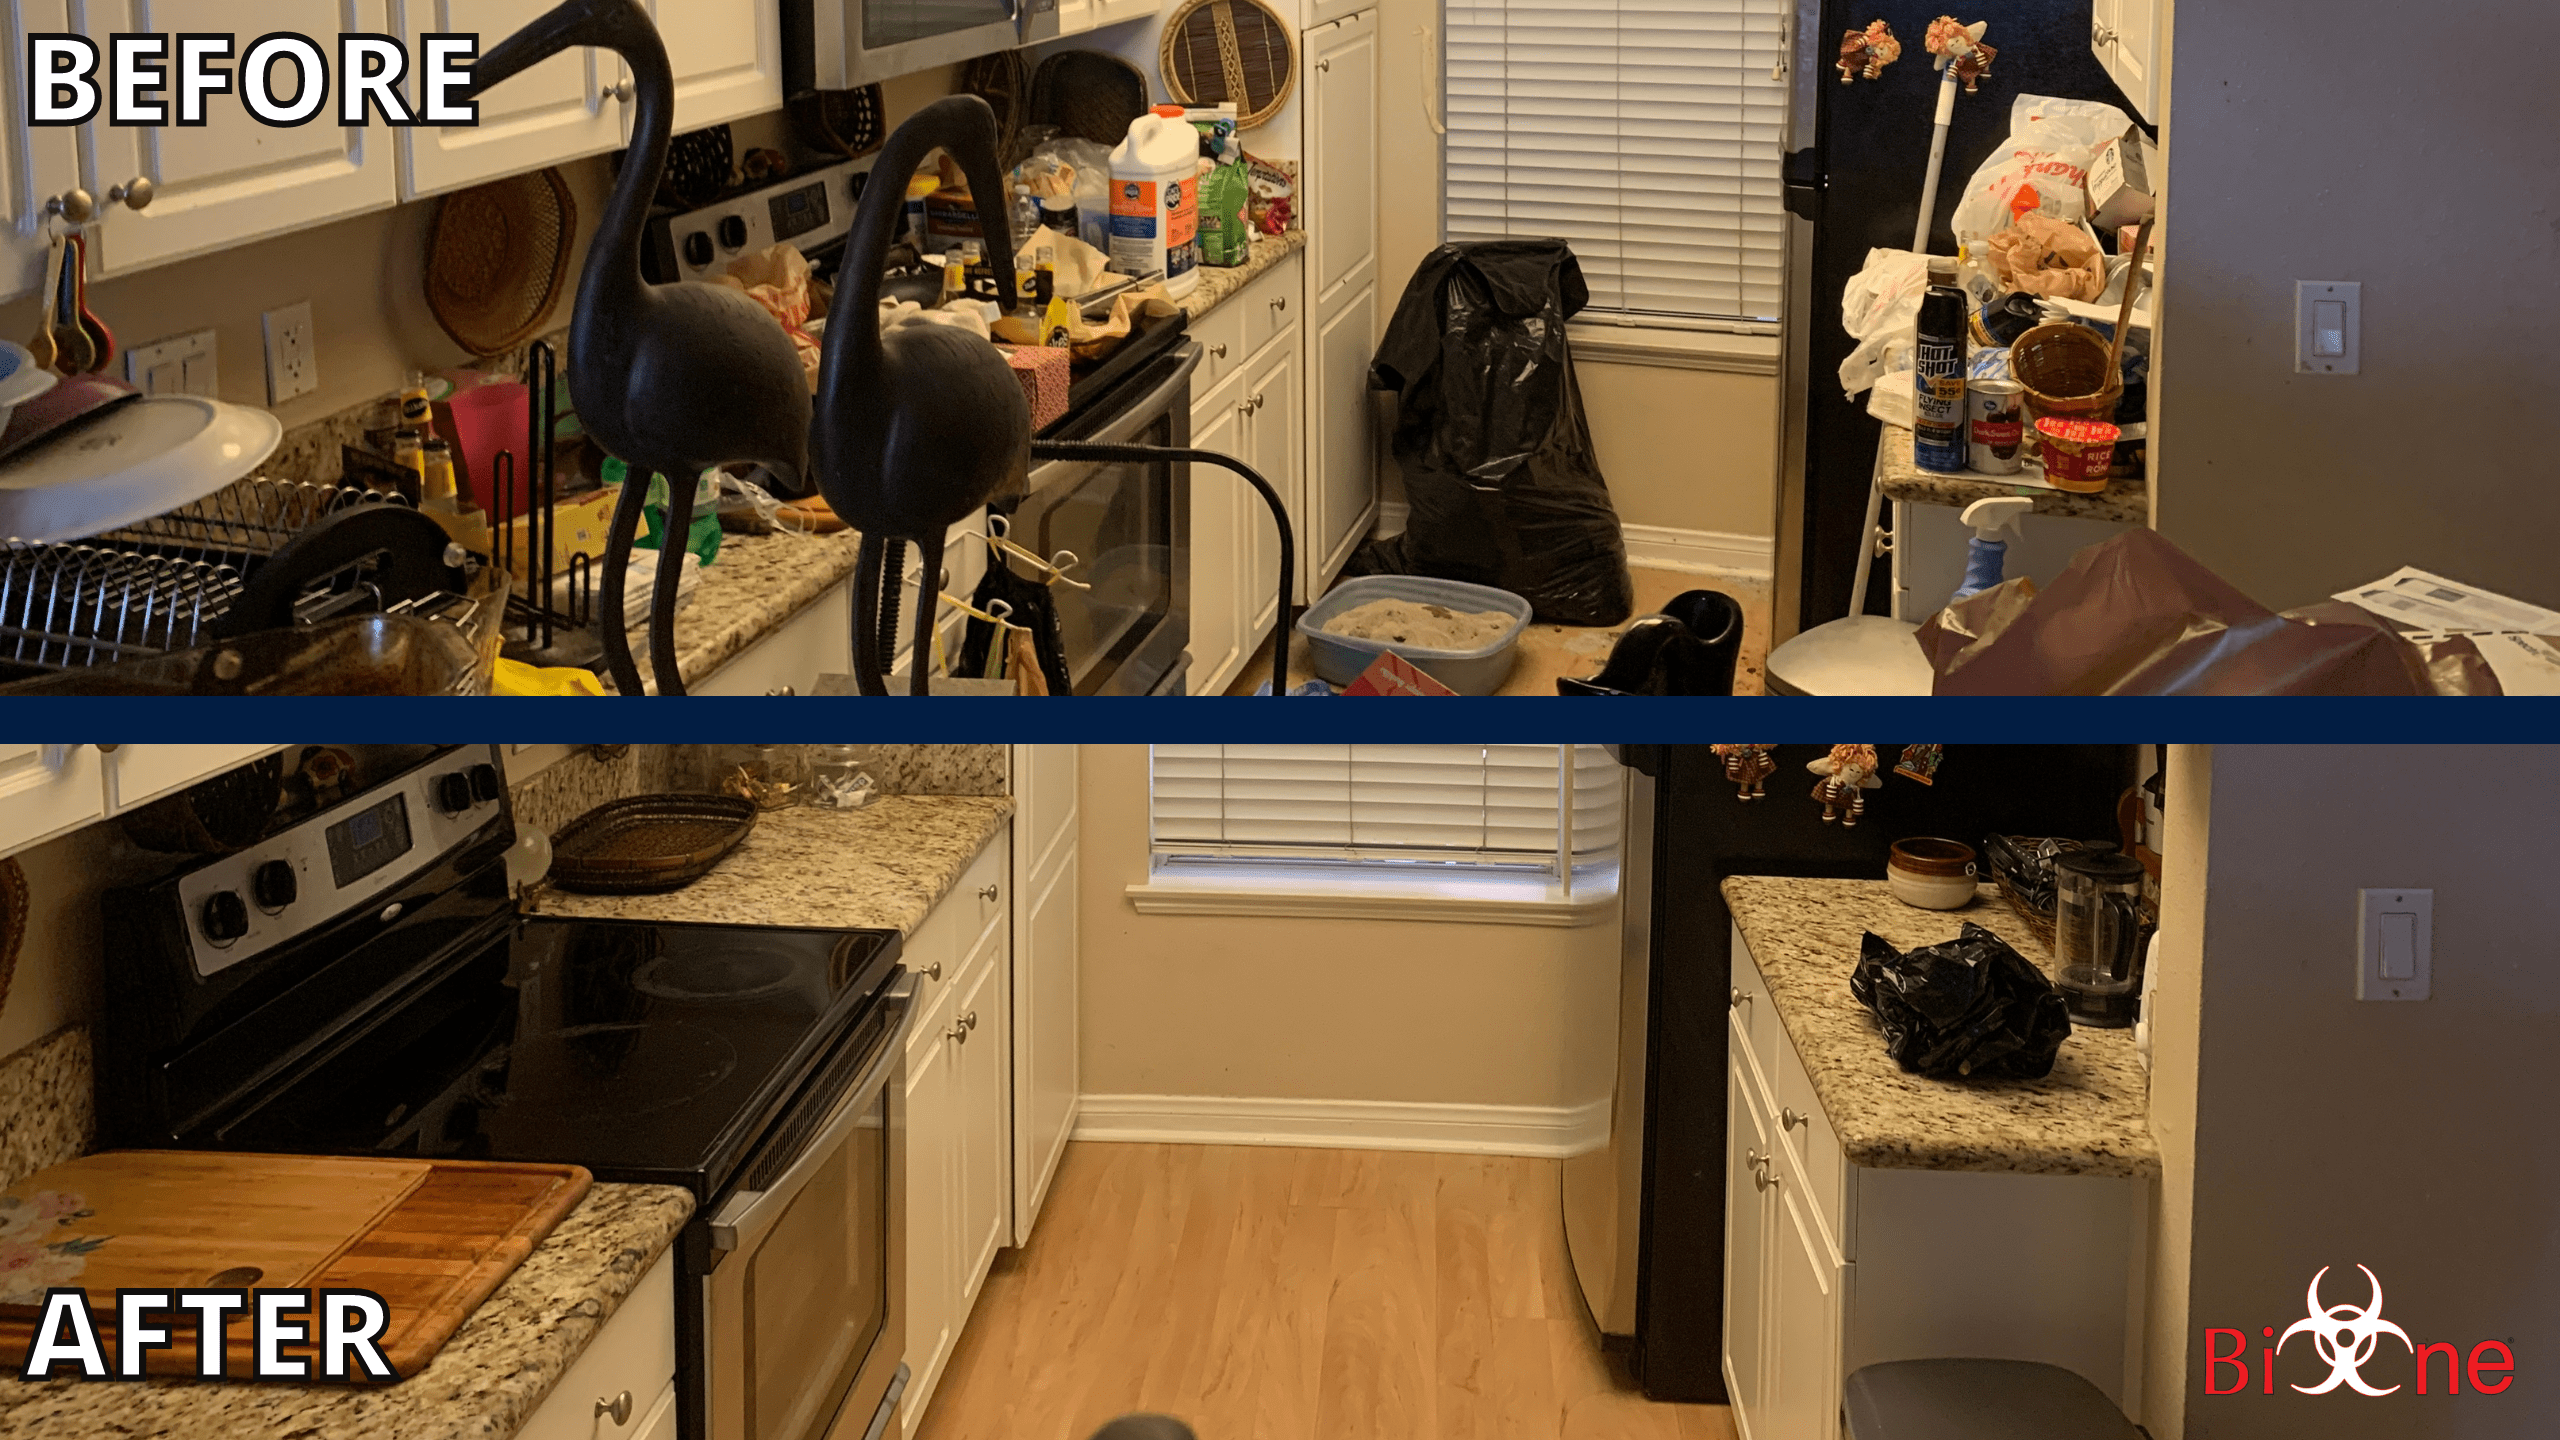 Picture is divided in two parts and shows a 'before/after' scenario of the same kitchen space but from the opposite angle. The first half shows the 'before' image, the space with multiple items and trash scattered around. The second half shows the 'after' image of the same space once it was cleaned with the help of the Bio-One Team. On the bottom right corner is the Bio-One logo.